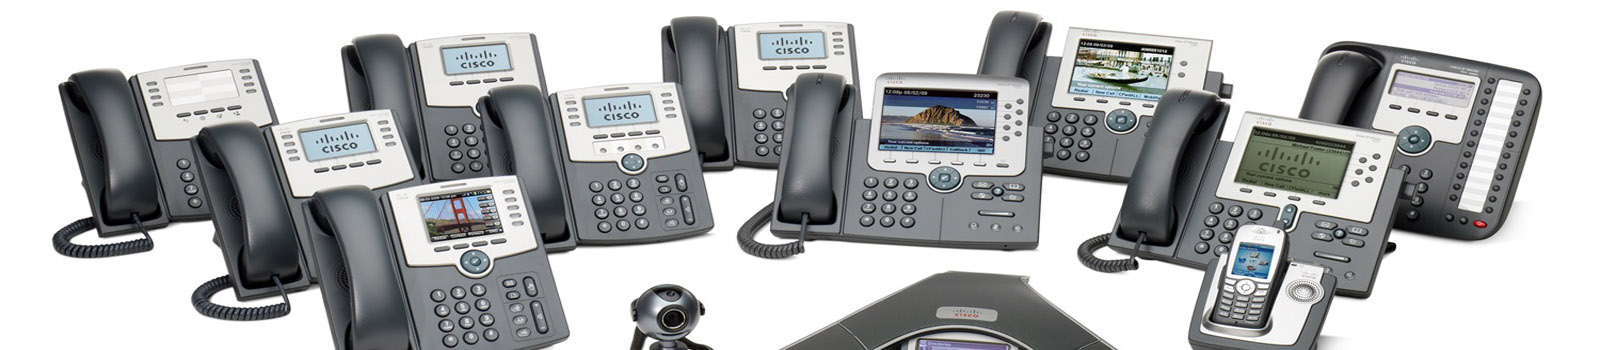 AMC and Service Support for Cisco Ip Phones,New Used Refubished for